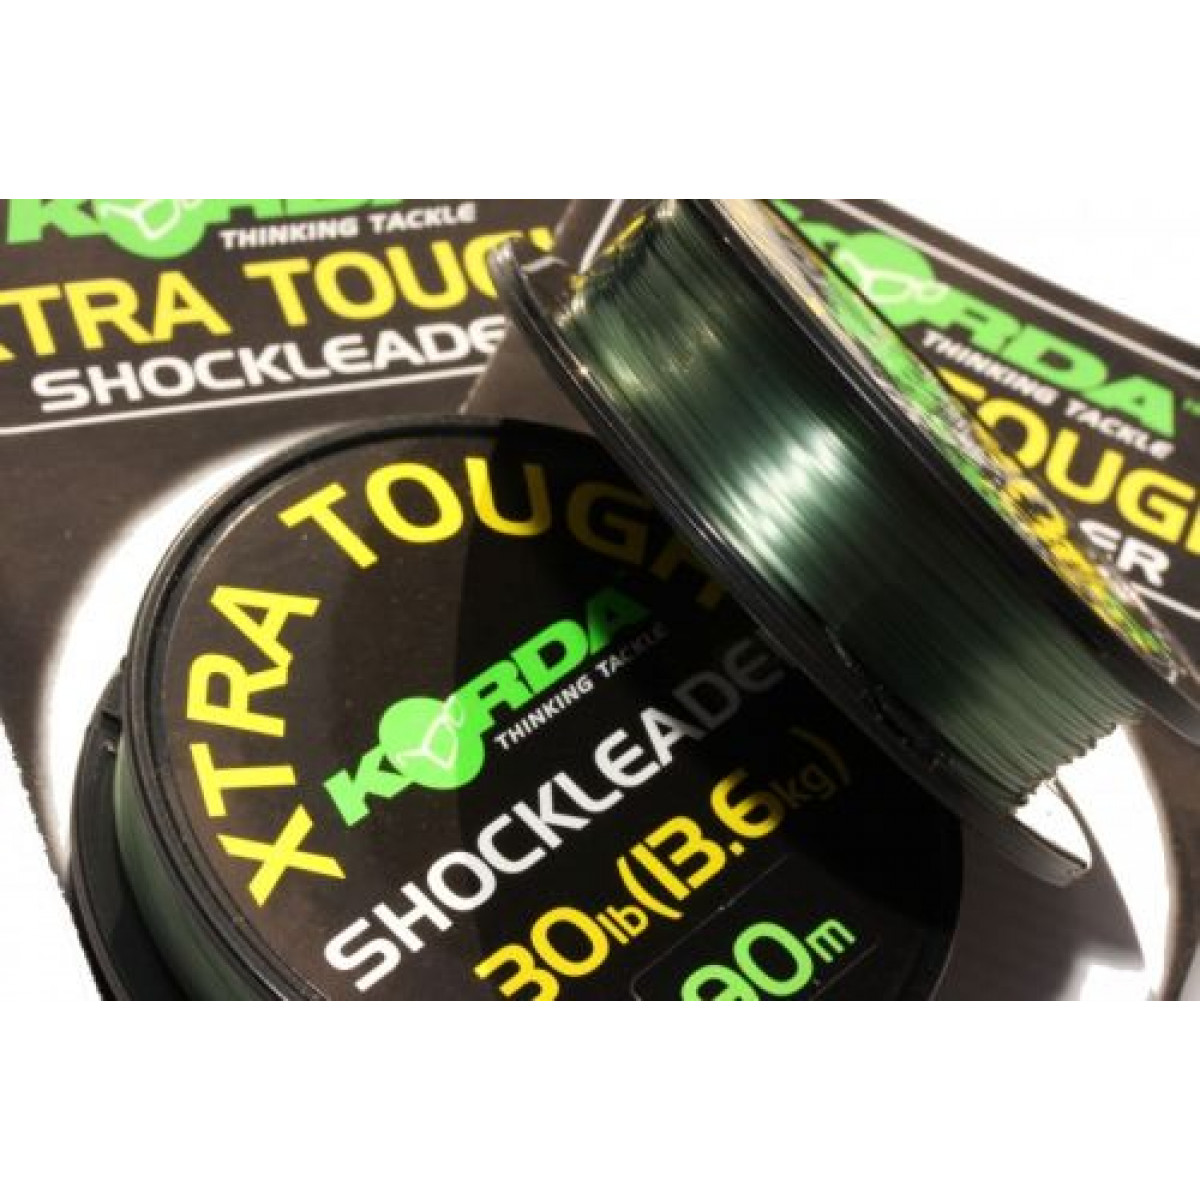 Xtra Tough Shockleader